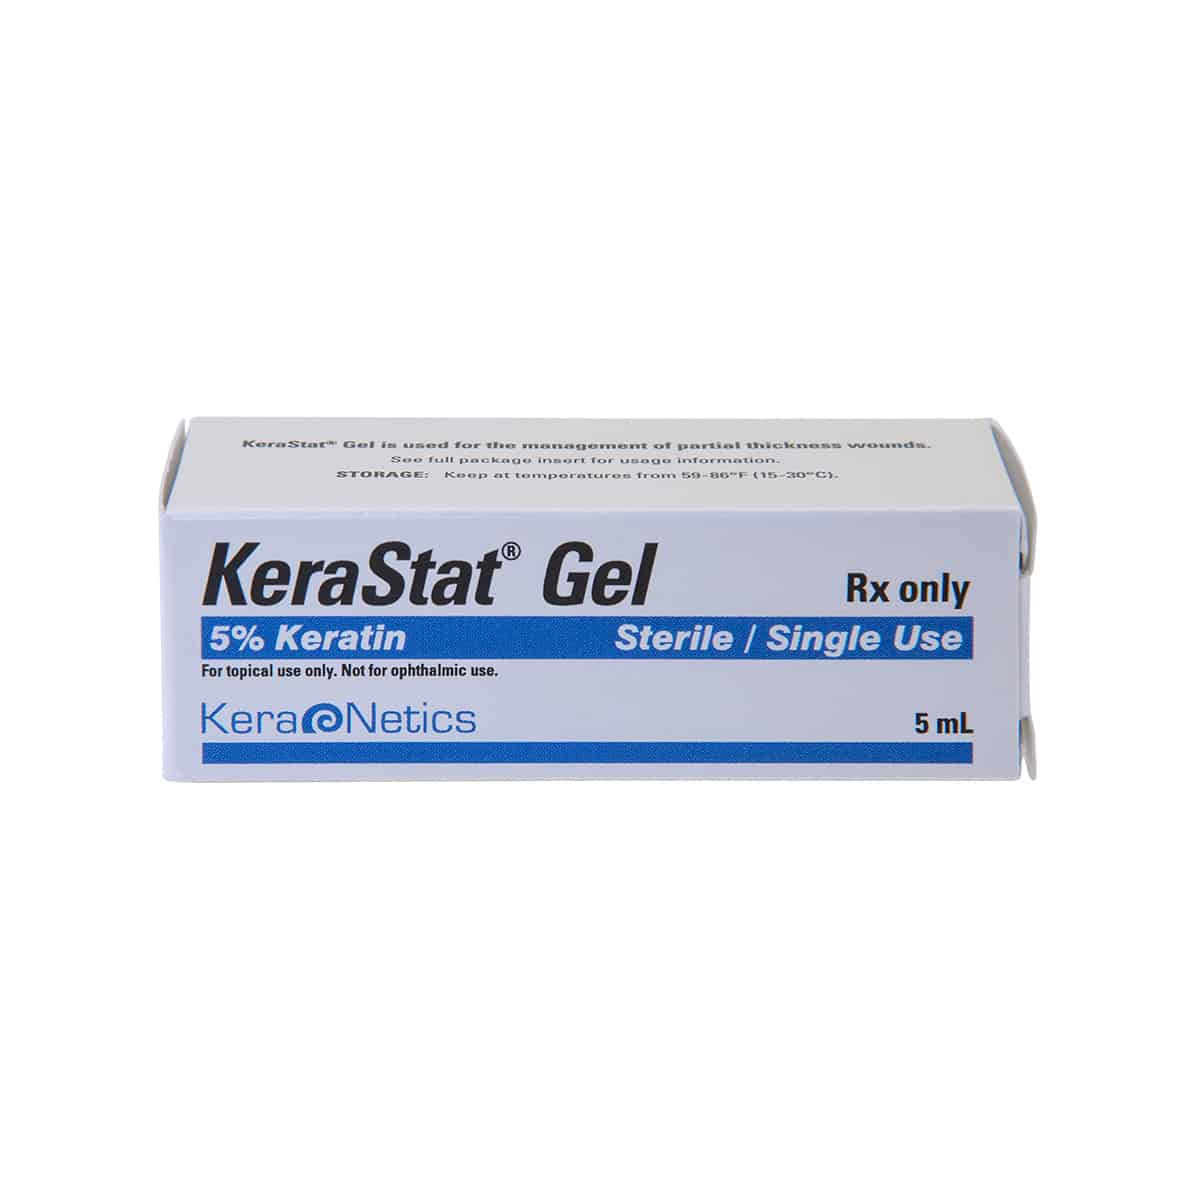 kerastat gel box front